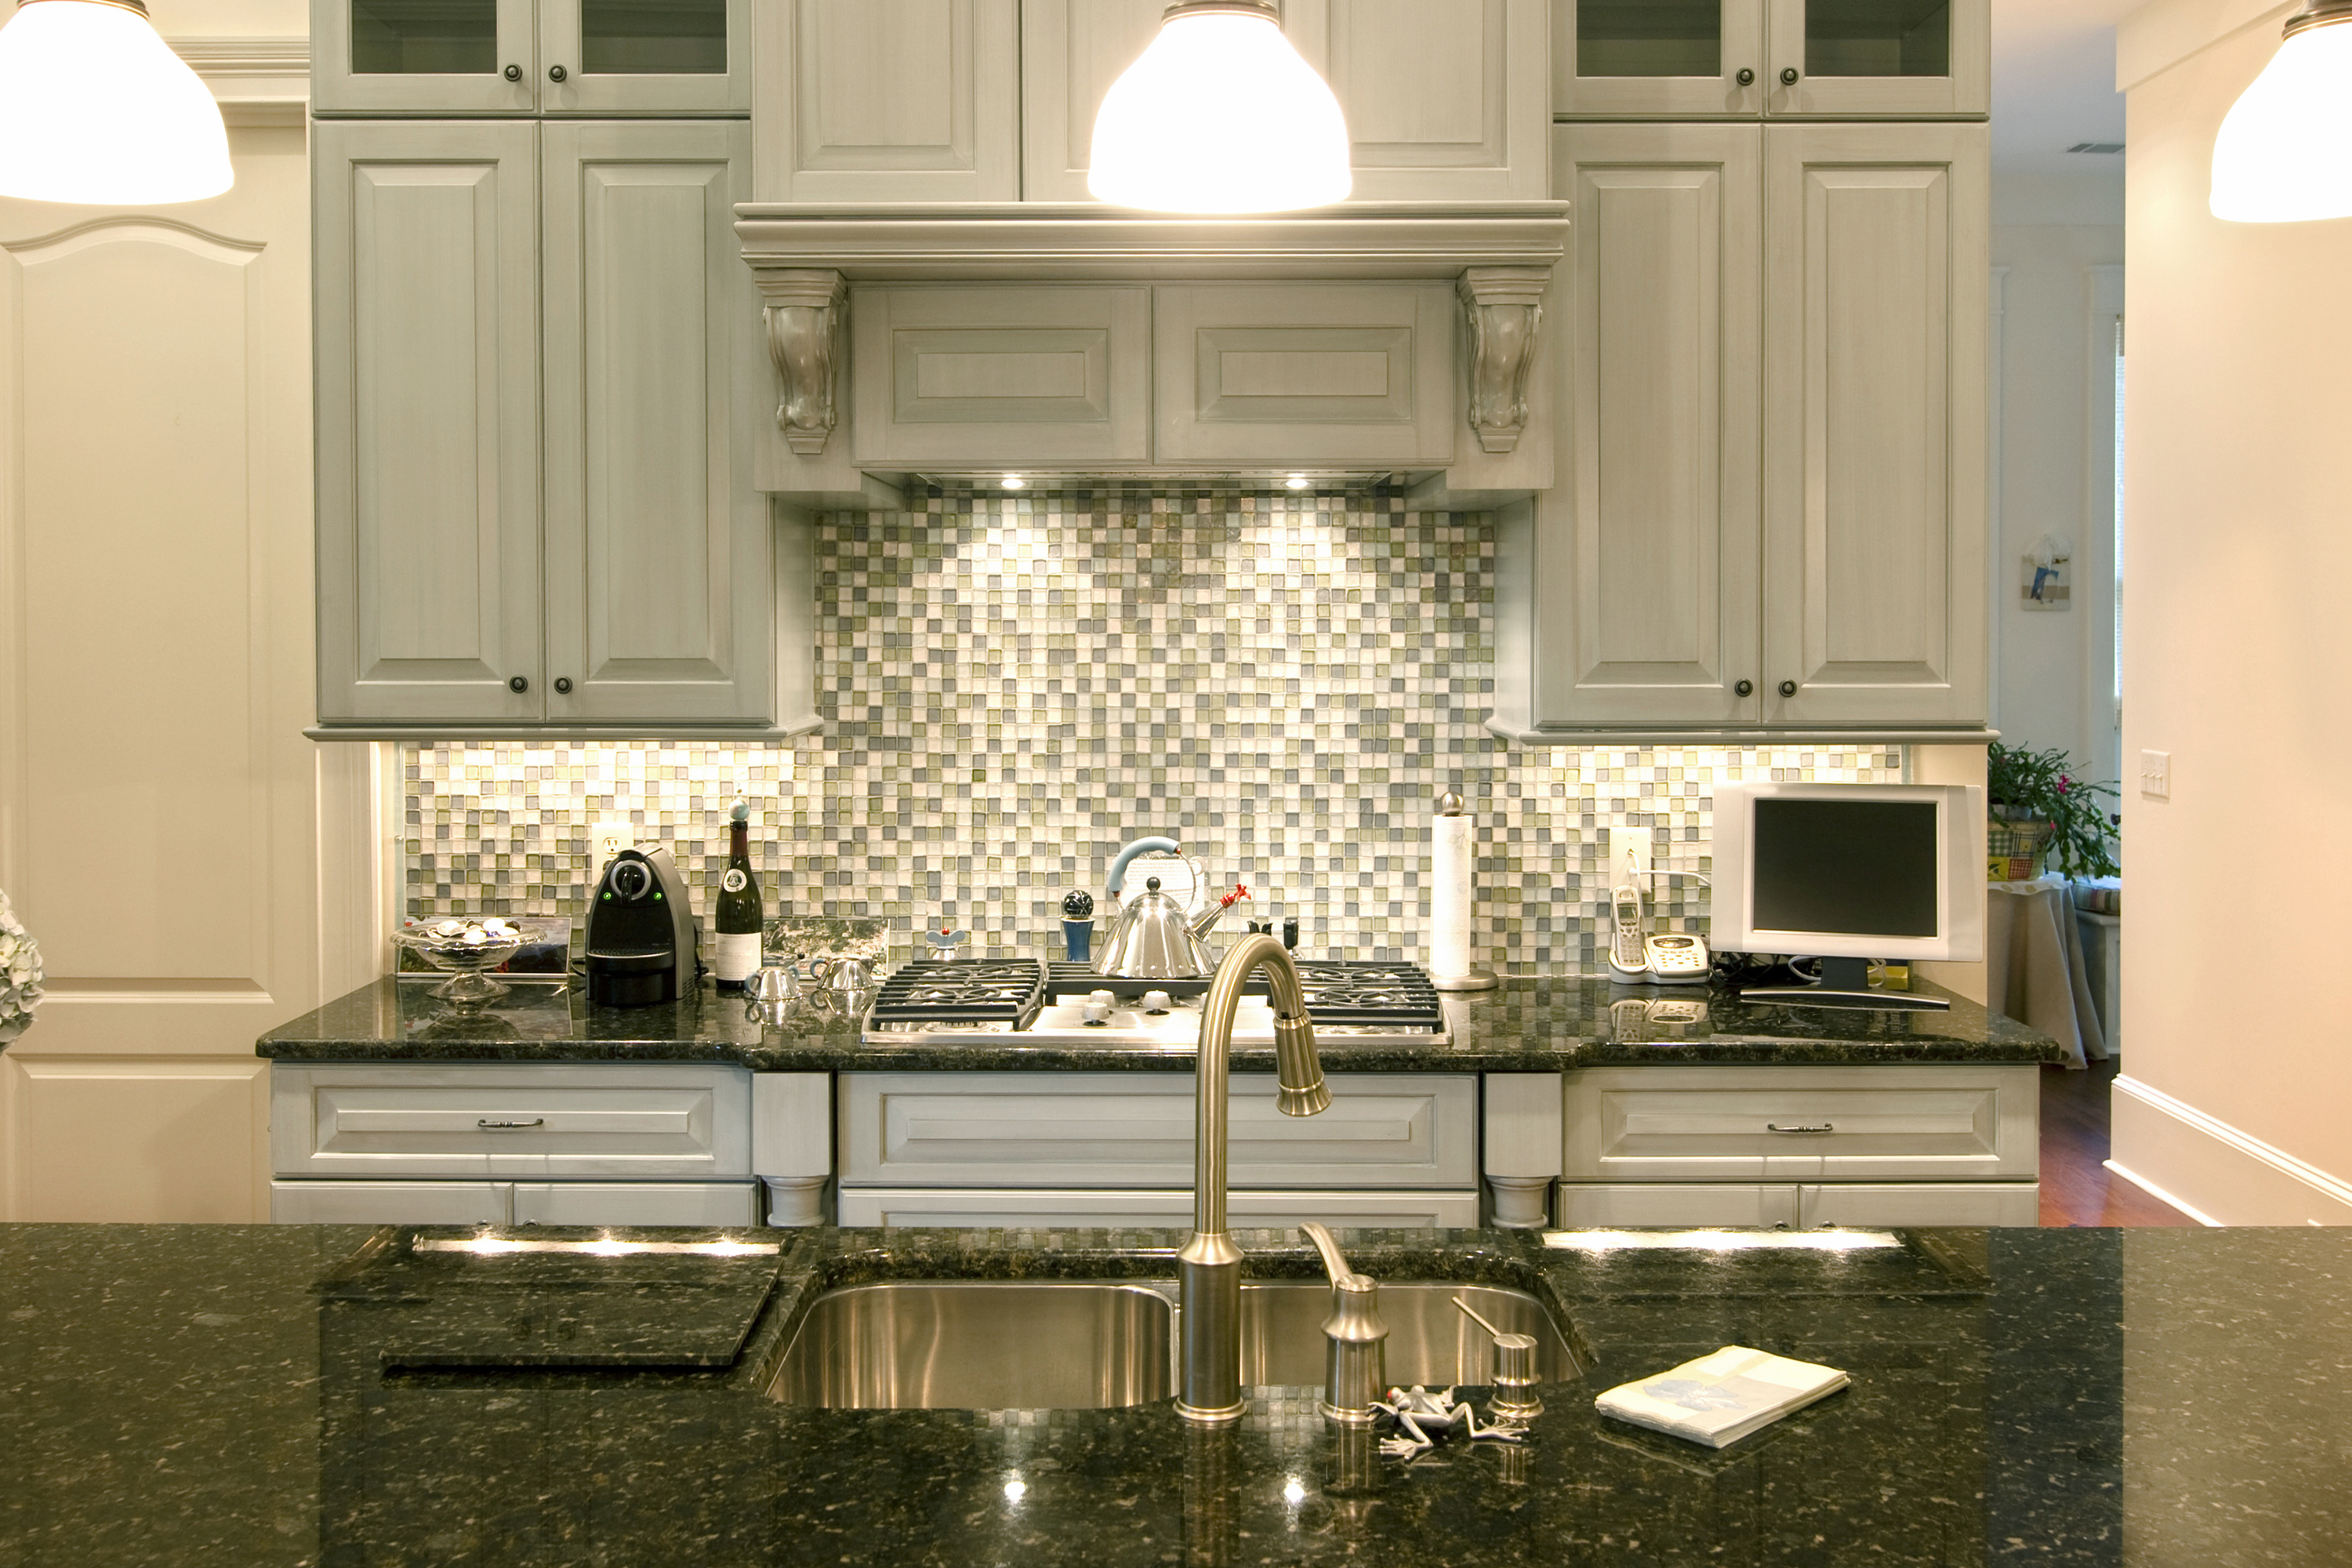 Granite Backsplash Ideas Part - 42: Backsplash Ideas For Kitchens Inexpensive